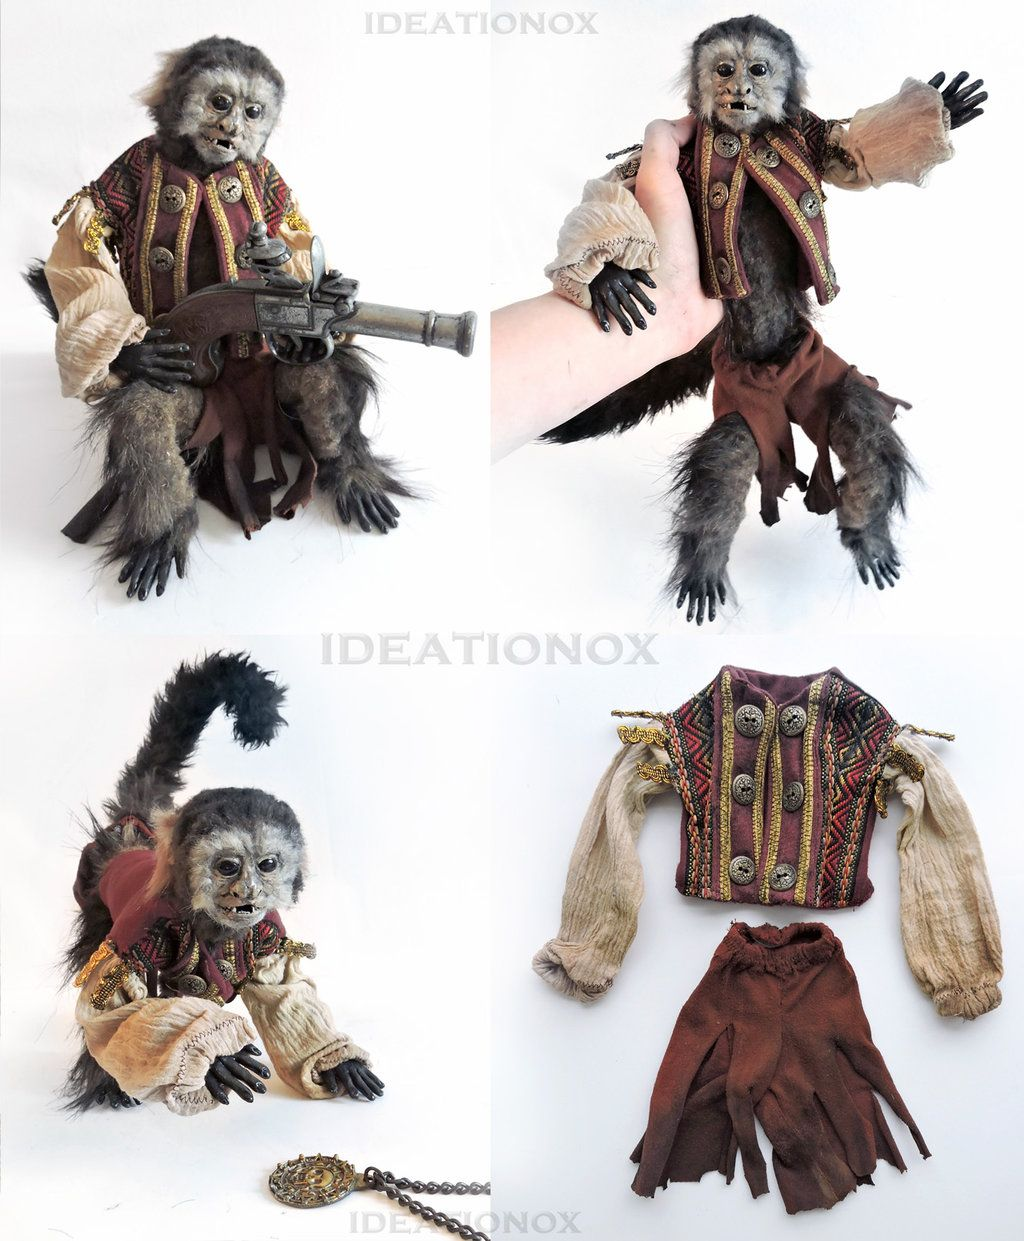 Jack the Monkey Pirates of the Caribbean Prop by Ideationox ...